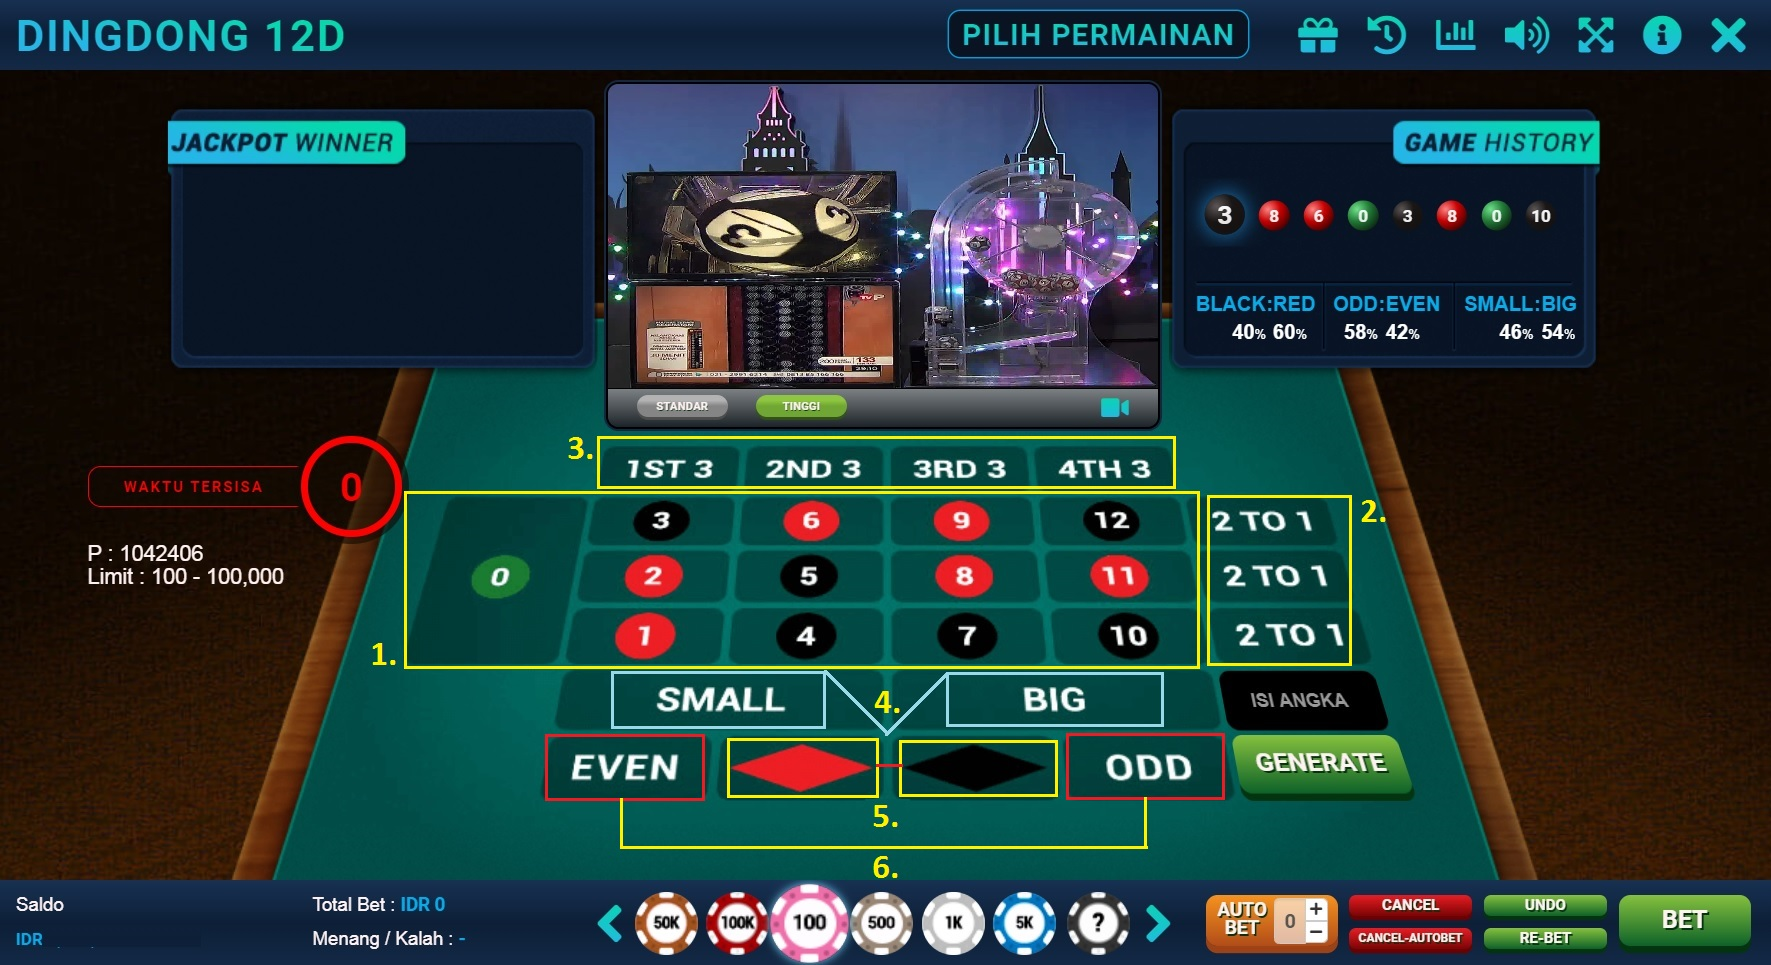 Panel Bettingan Dingdong 12D